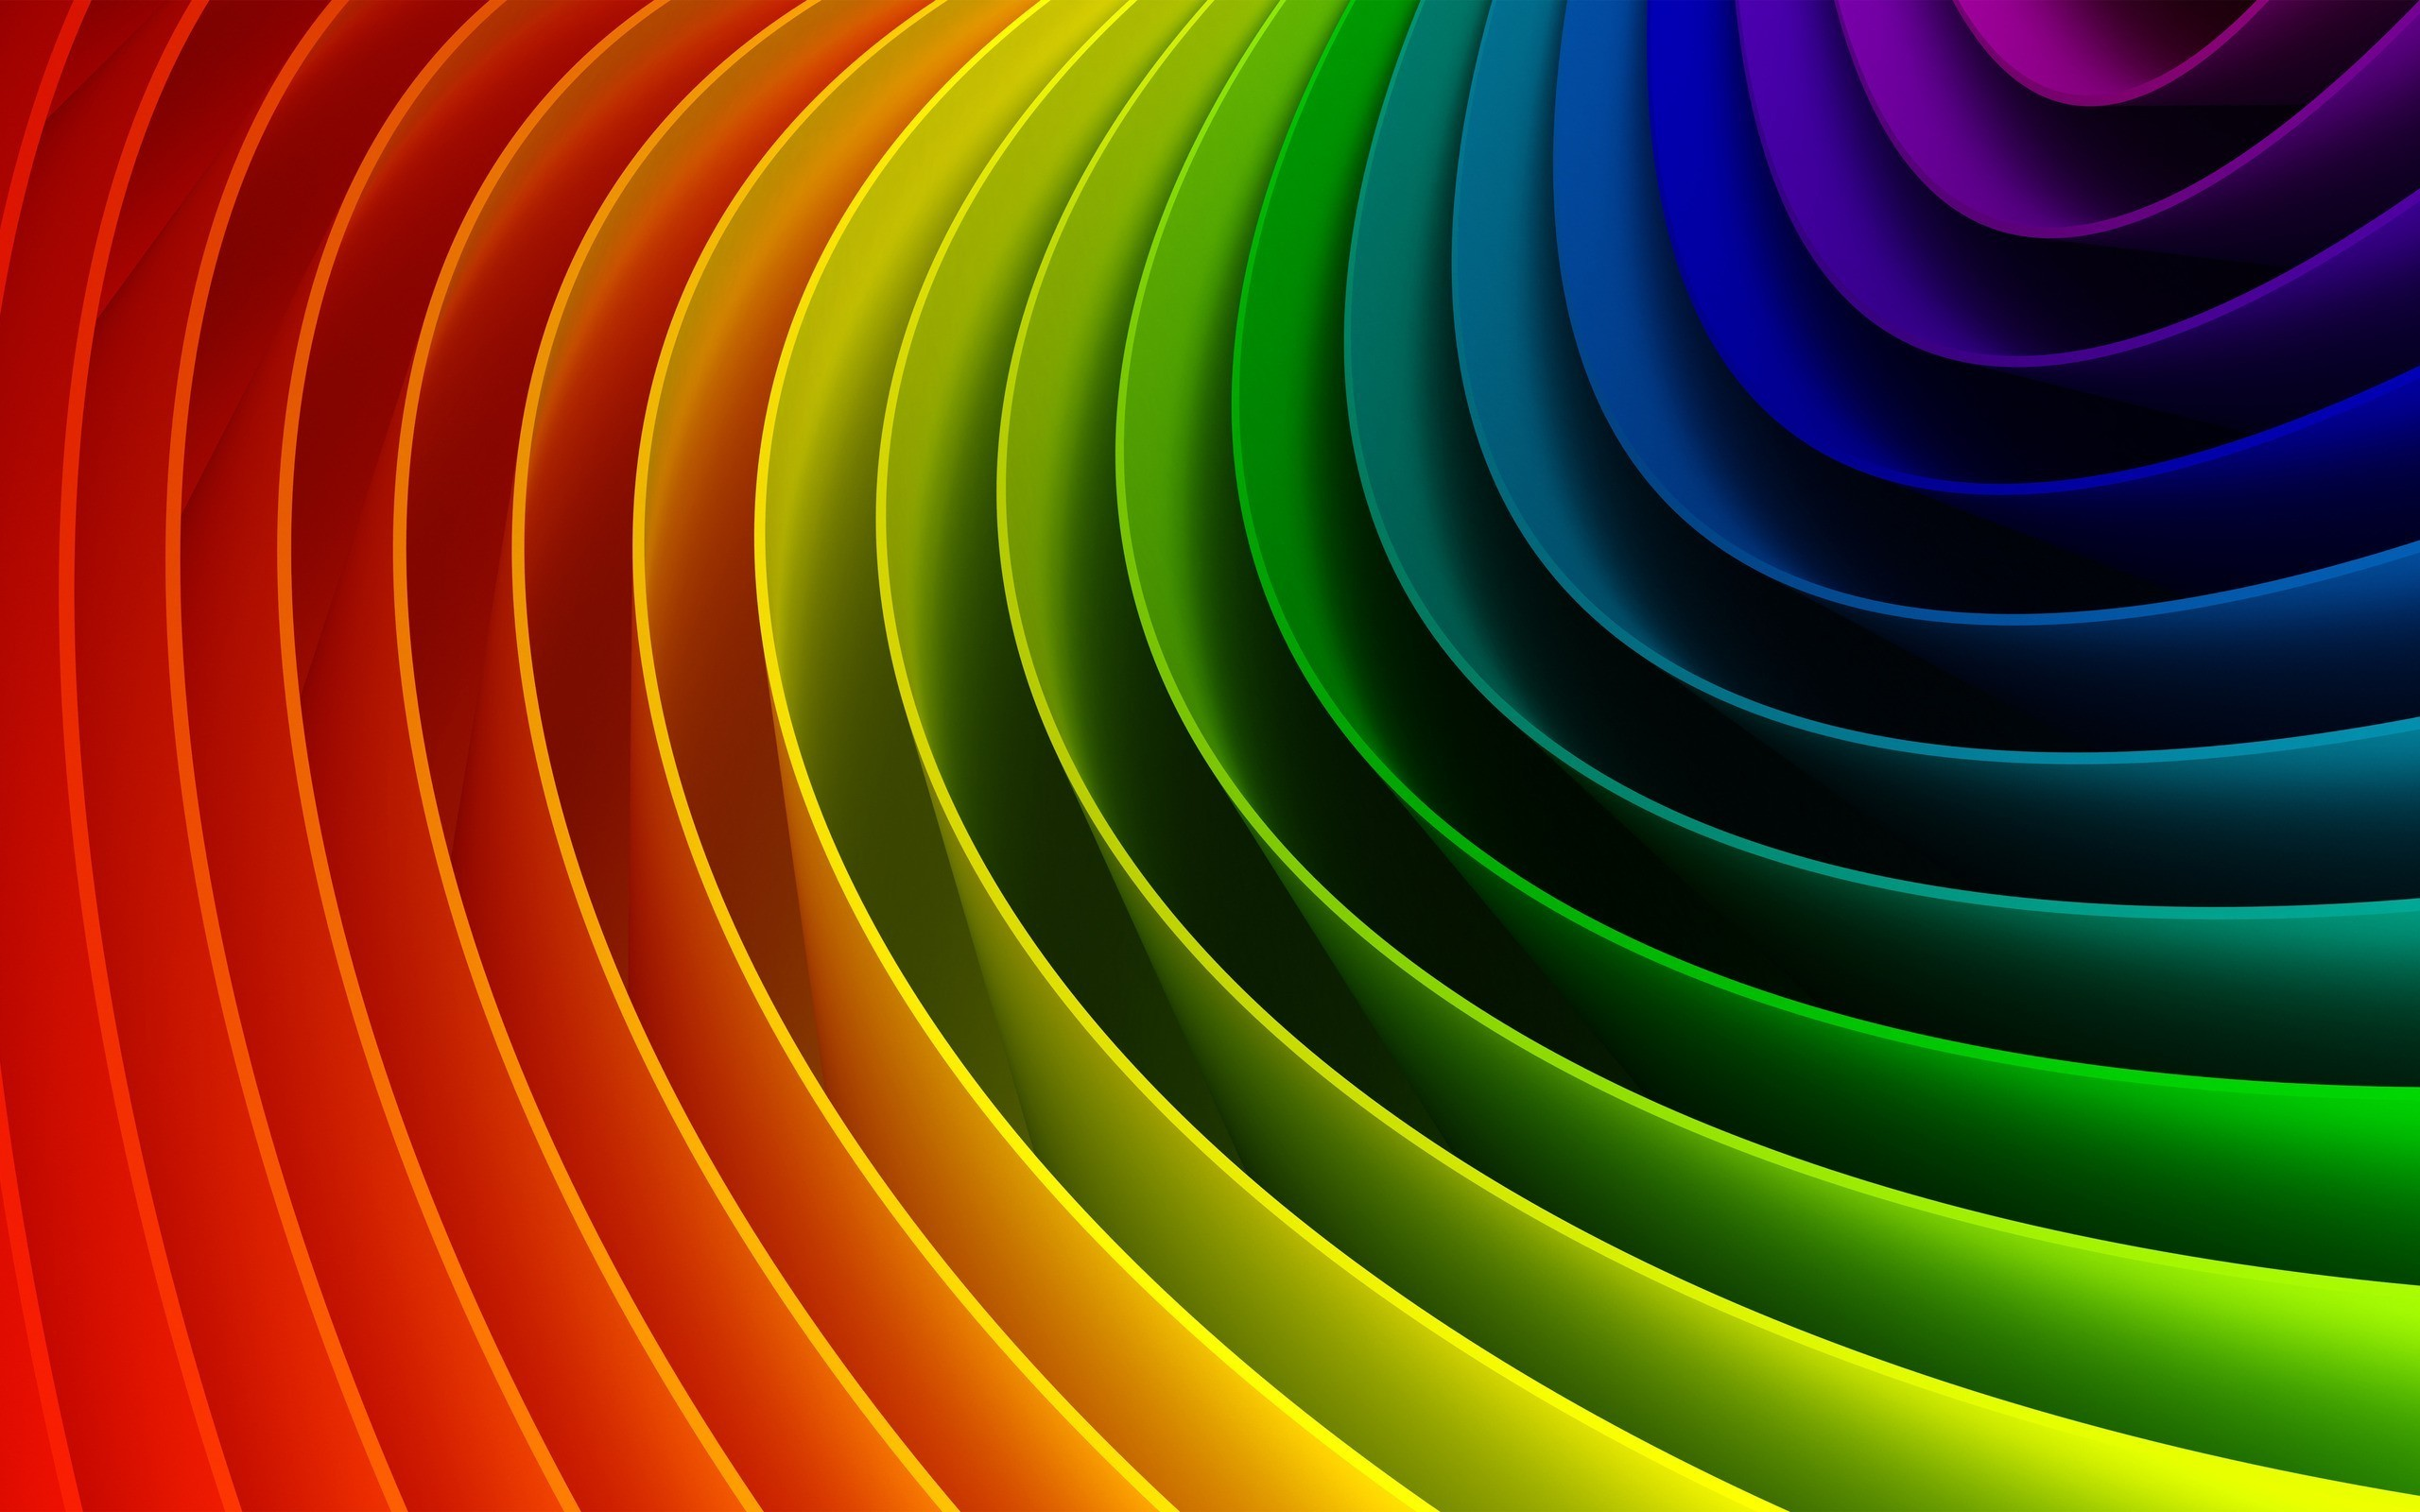 Res: 2560x1600, Download wallpaper: rainbow background, Rainbow, download photo, desktop  wallpapers, rainbow wallpaper